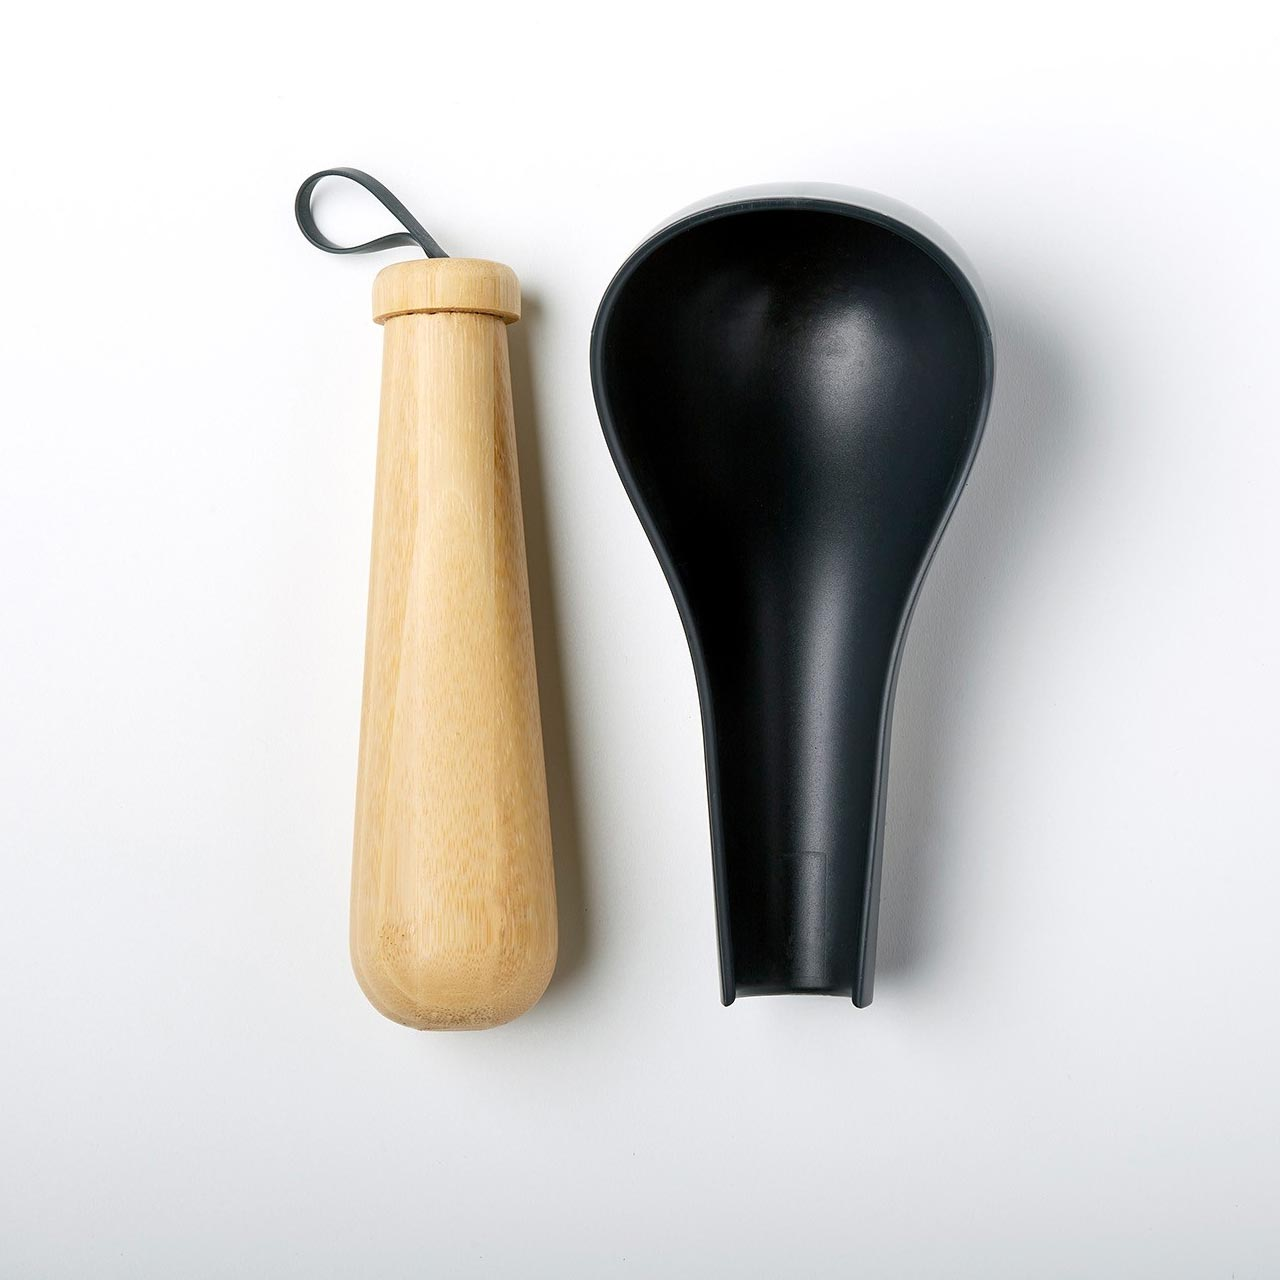 Mortar & Pestle 'Morty' by COOKUT  | The Design Gift Shop